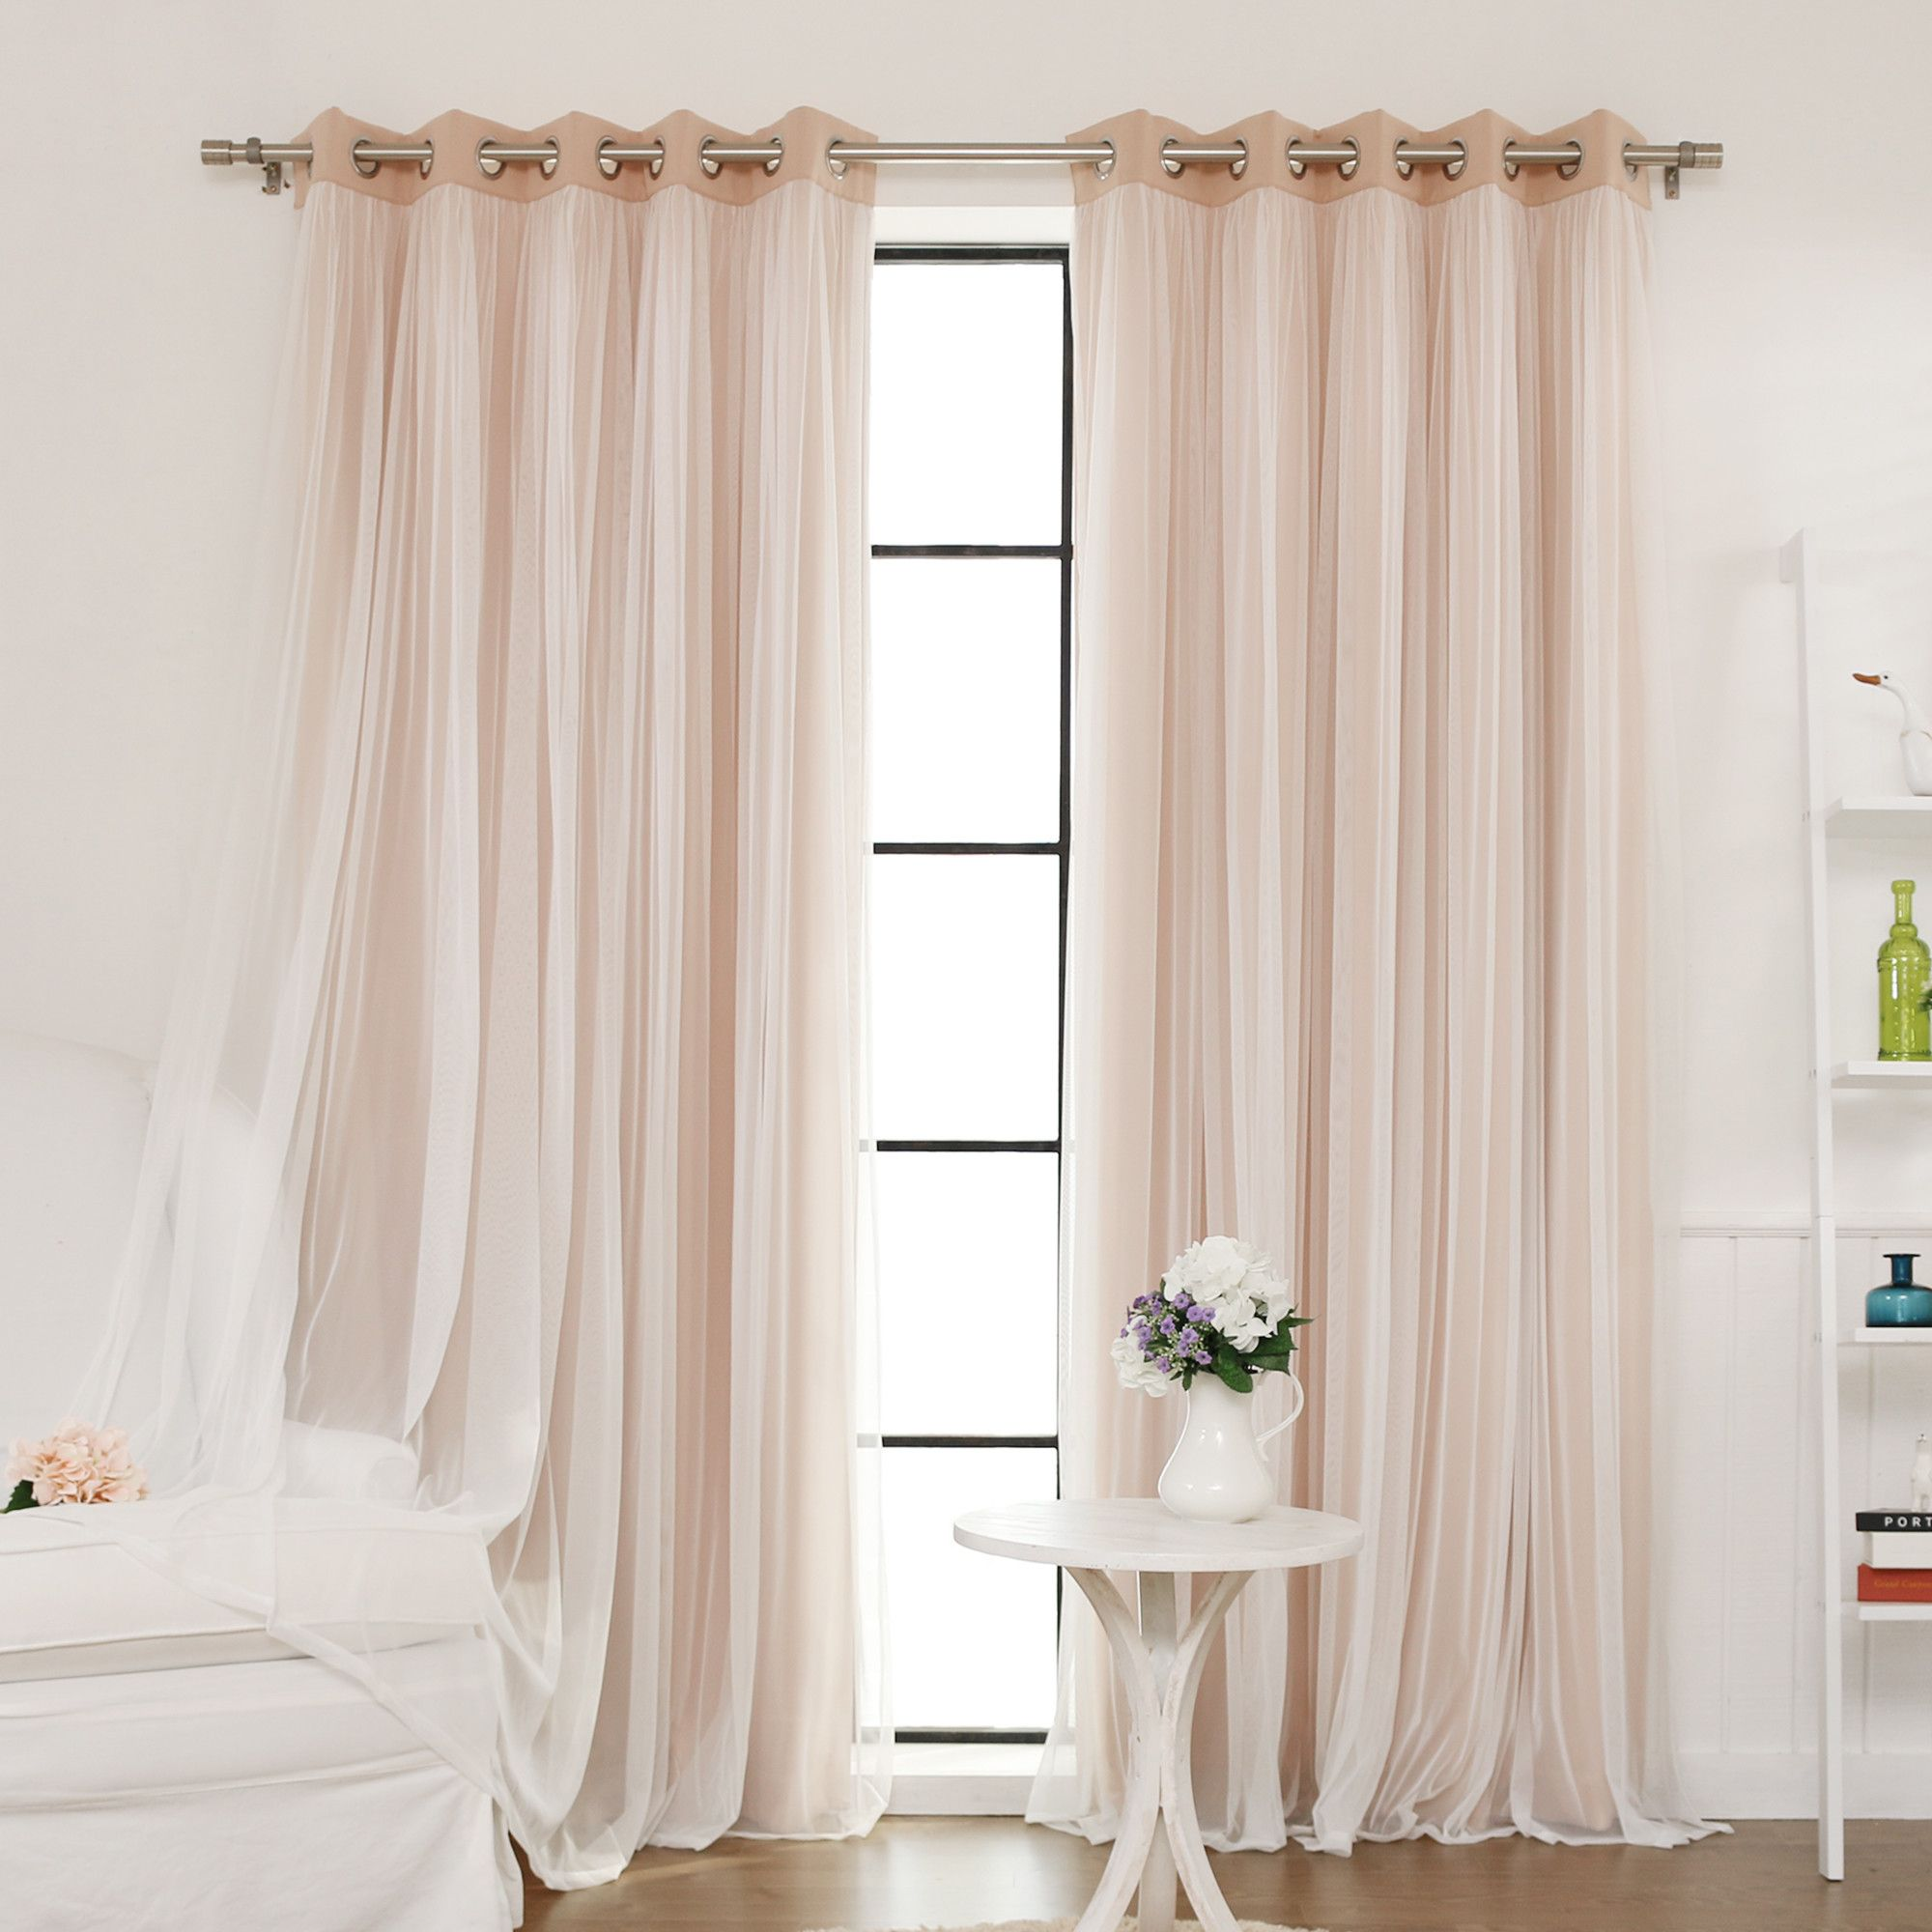 All products bedroom bedroom decor window treatments curtains - Anabelle Thermal Blackout Energy Efficient Grommet Curtain Panel Pair Grommet Curtainsblackout Curtainscurtain Panelsgirls Bedroombedroom Ideasall